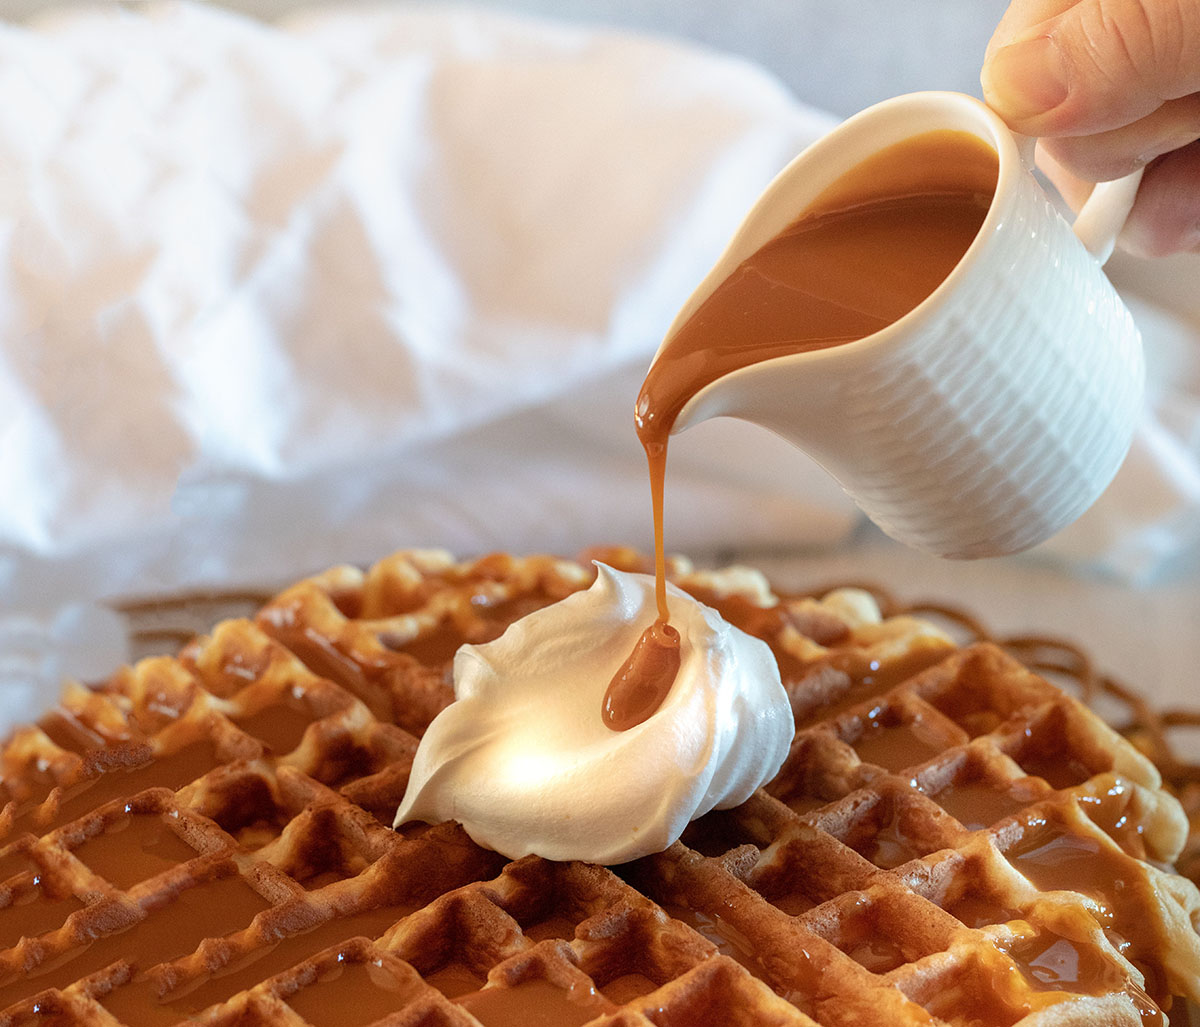 Pouring succulent caramel syrup over a stack of crispy brown waffles.